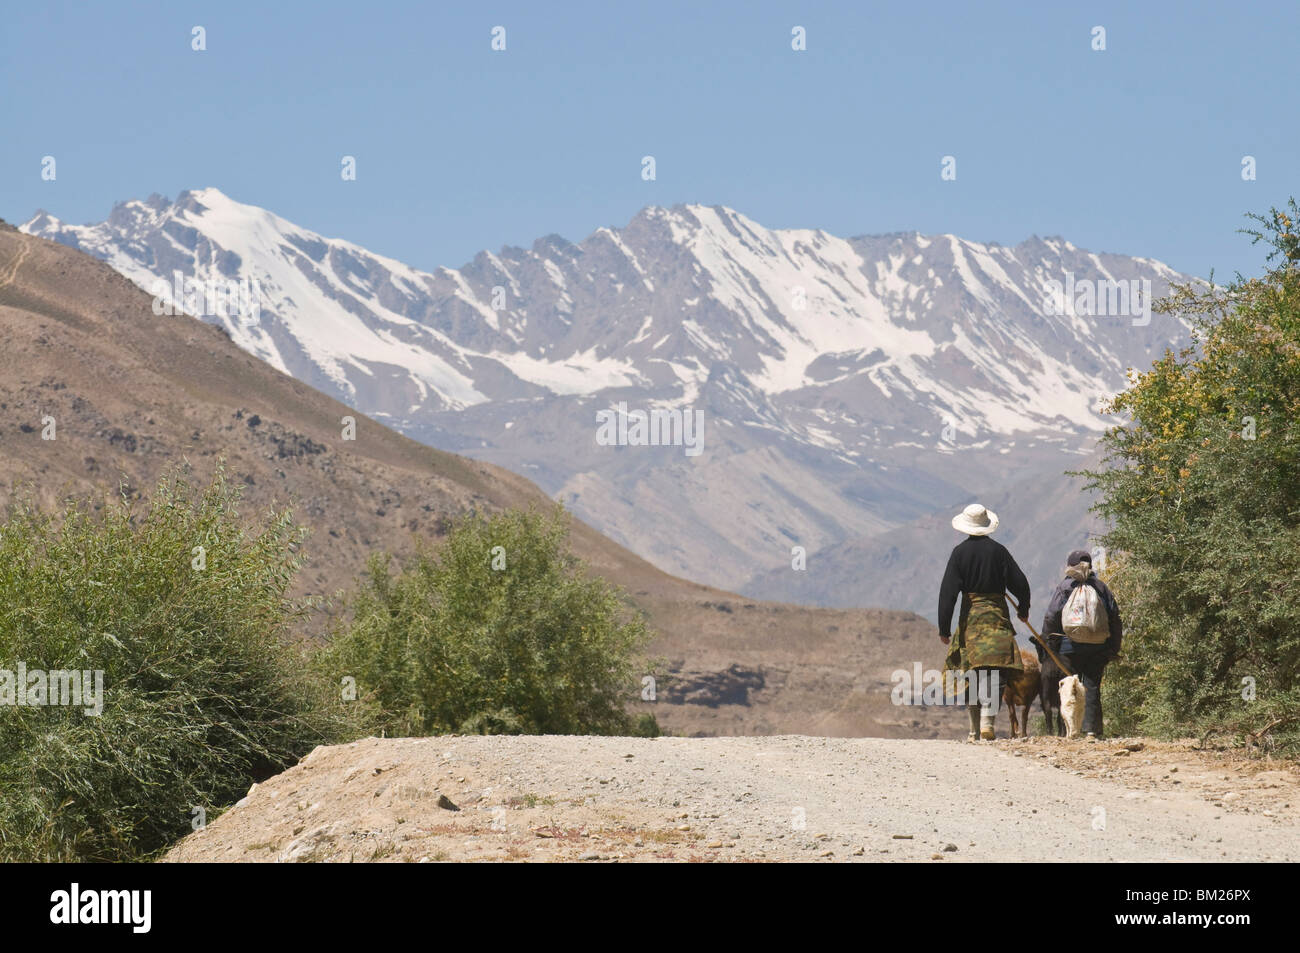 Farmers on their way home, Shokh Dara valley, the Pamirs, Tajikistan, Central Asia - Stock Image